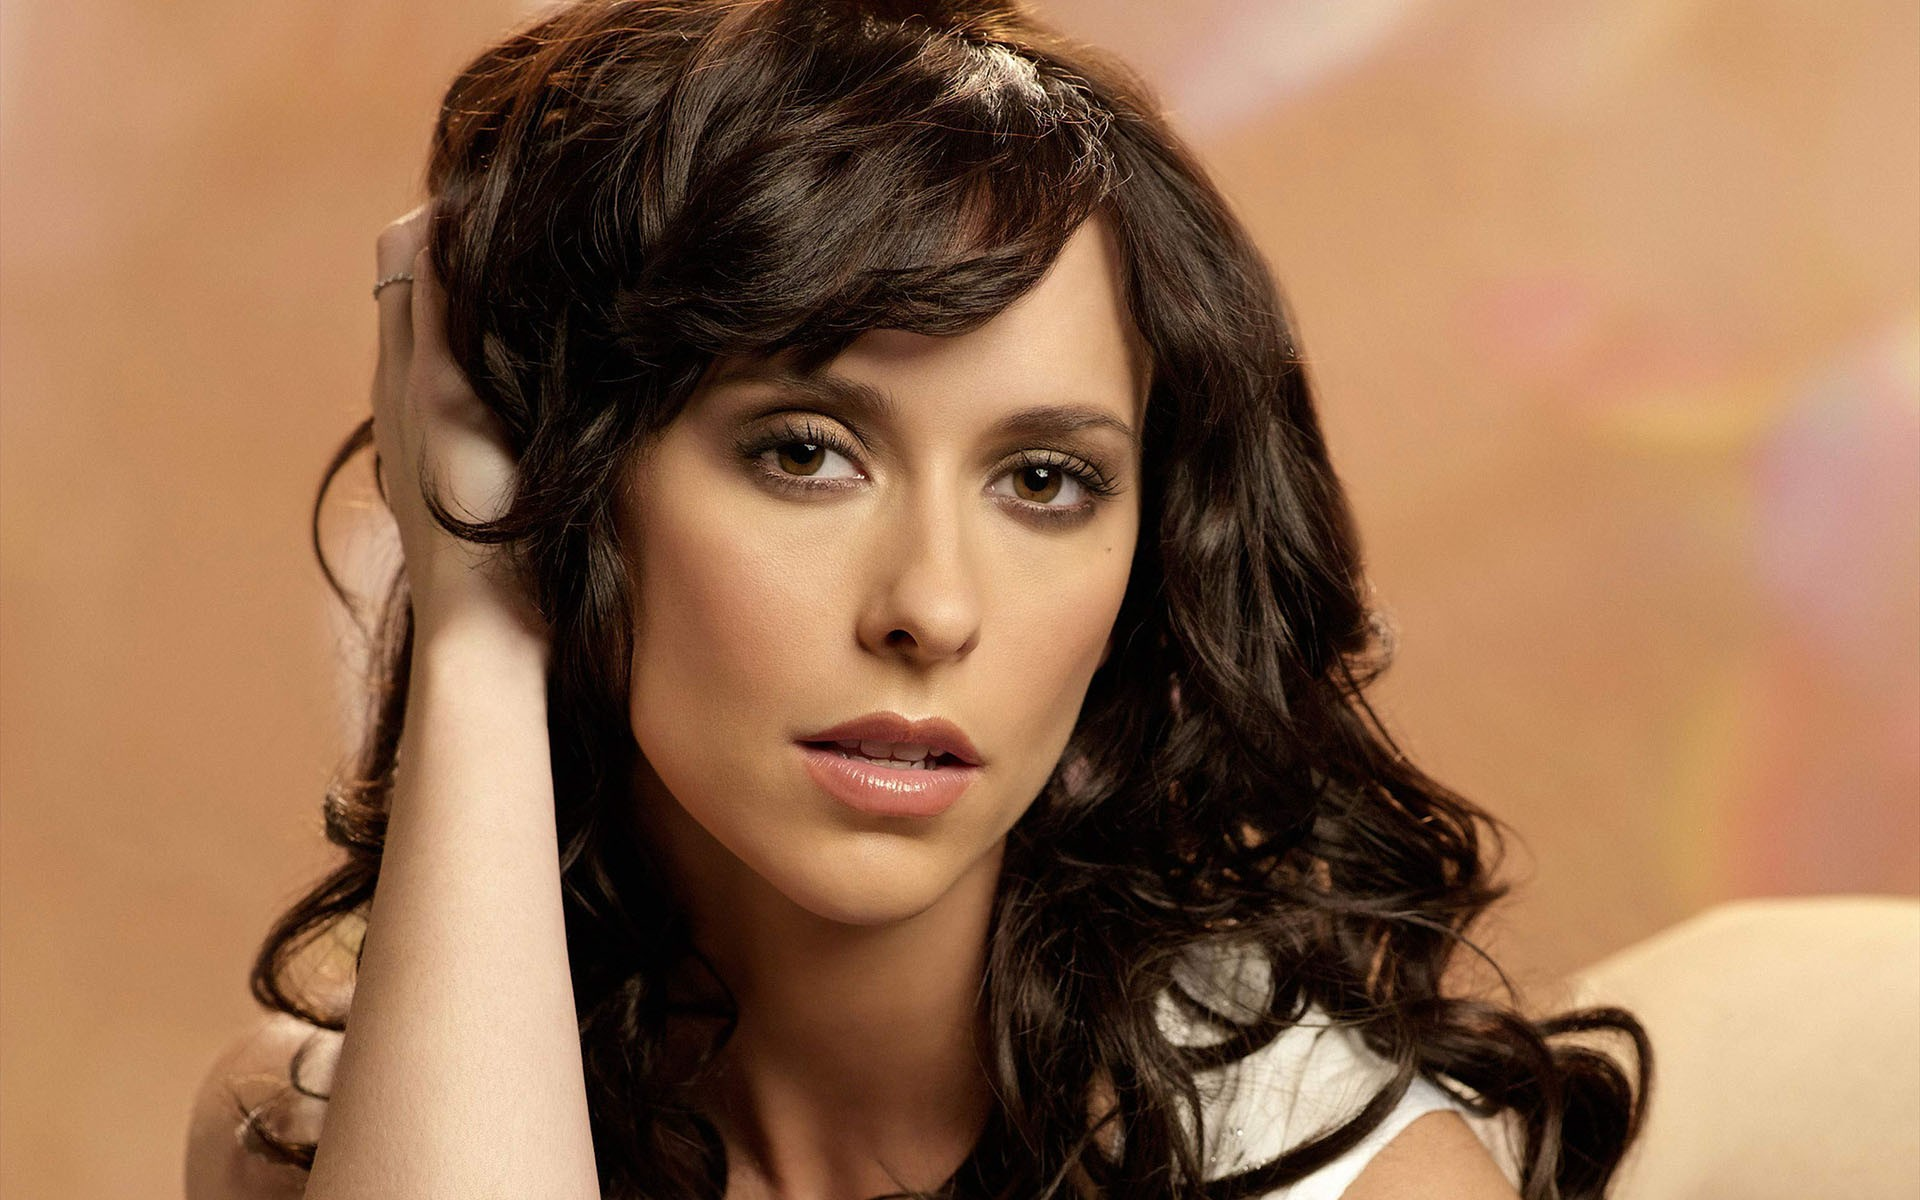 Jennifer Love Hewitt Wallpapers, Pictures, Images